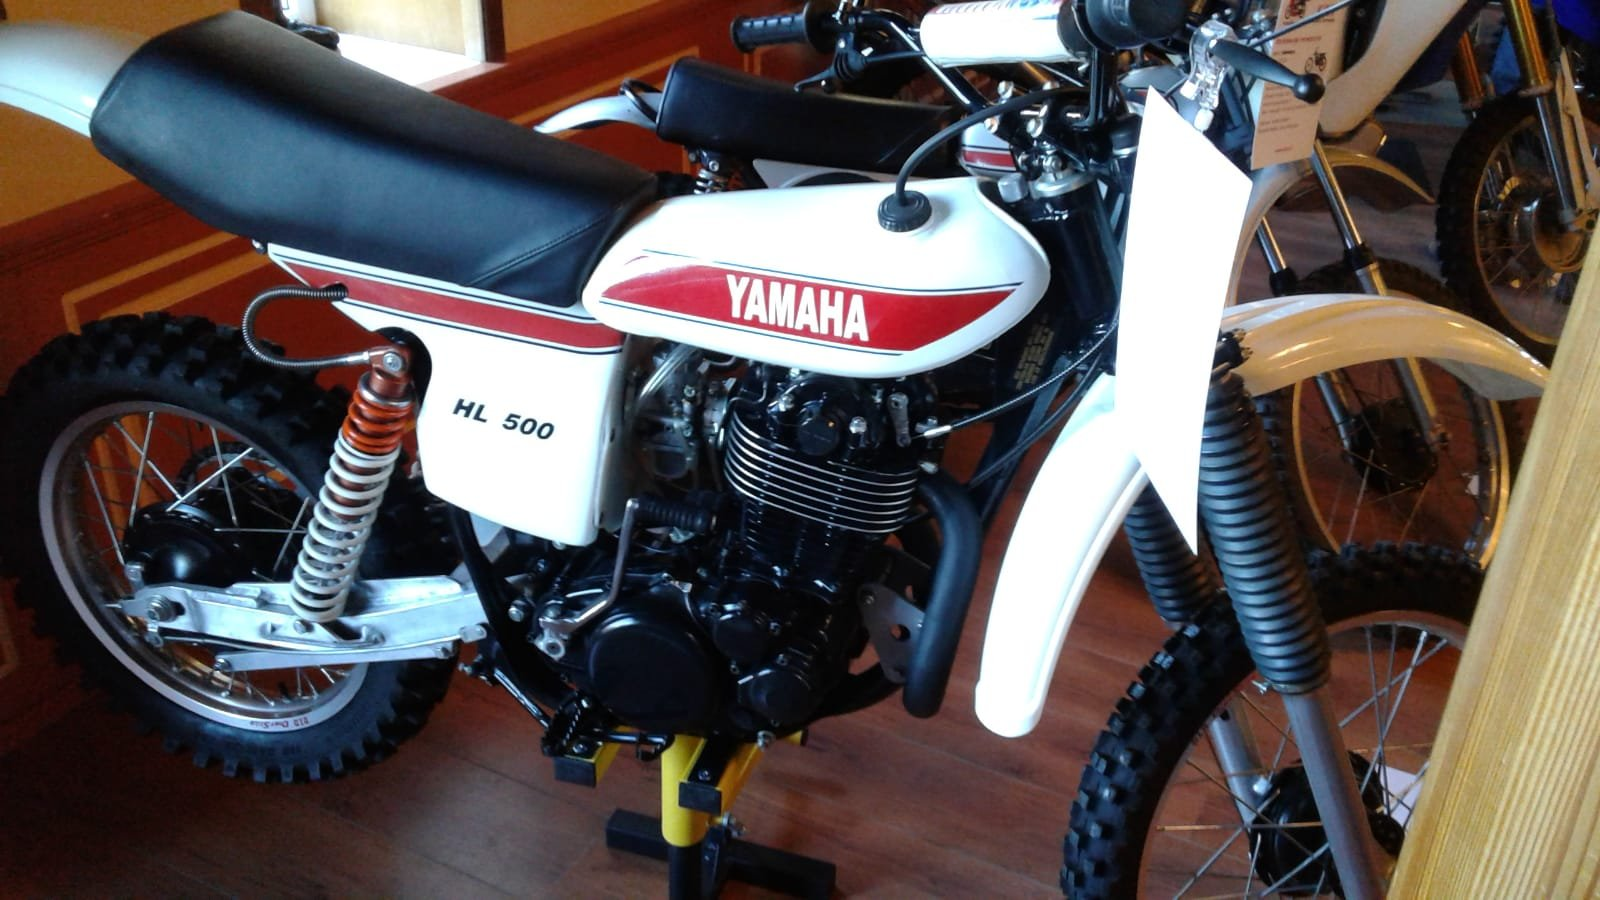 1978 Yamaha HL 500 For Sale (picture 4 of 4)